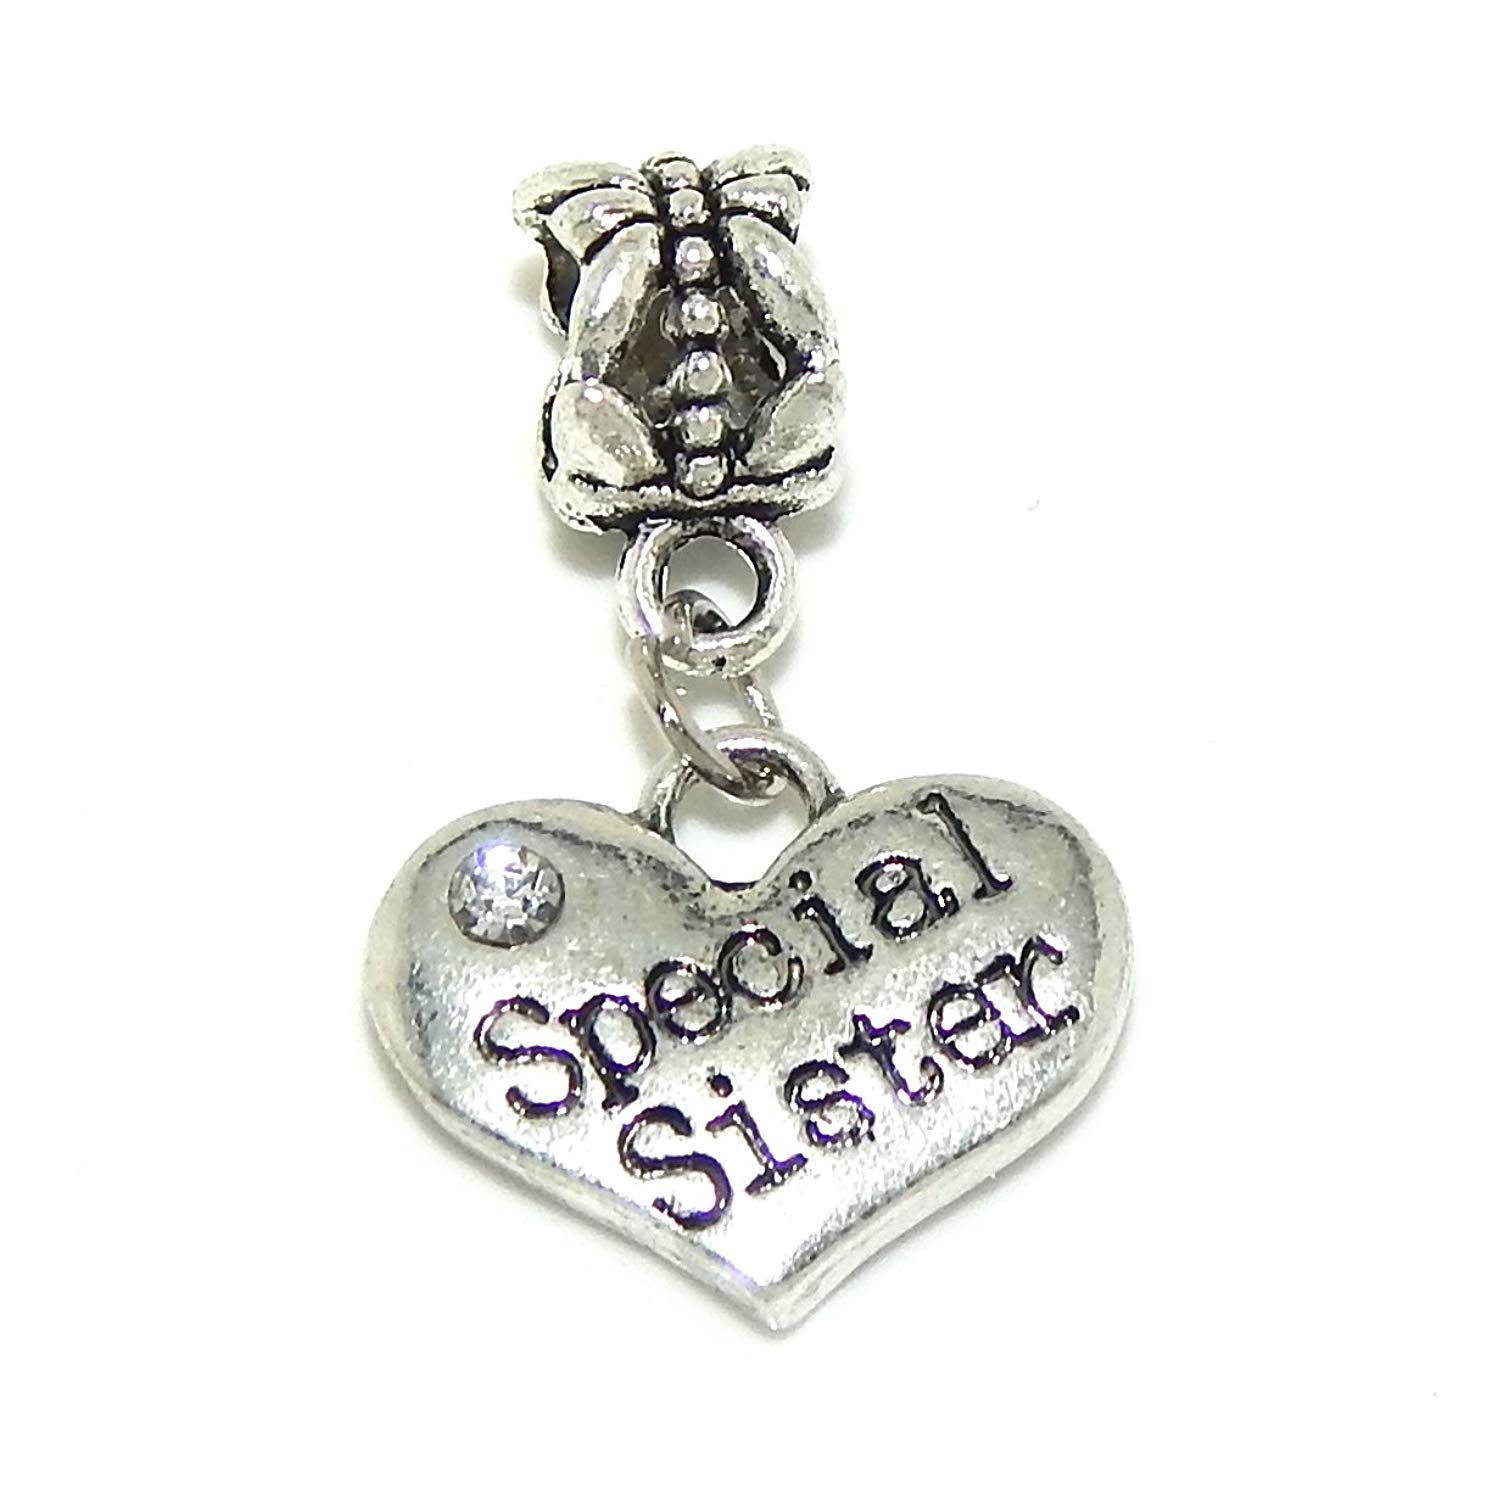 b3411bf42 Pro Jewelry Dangling 'Special Sister Heart' Charm Bead for Snake Chain  Charm Bracelet 00174 >>> Check out the image by visiting the link.